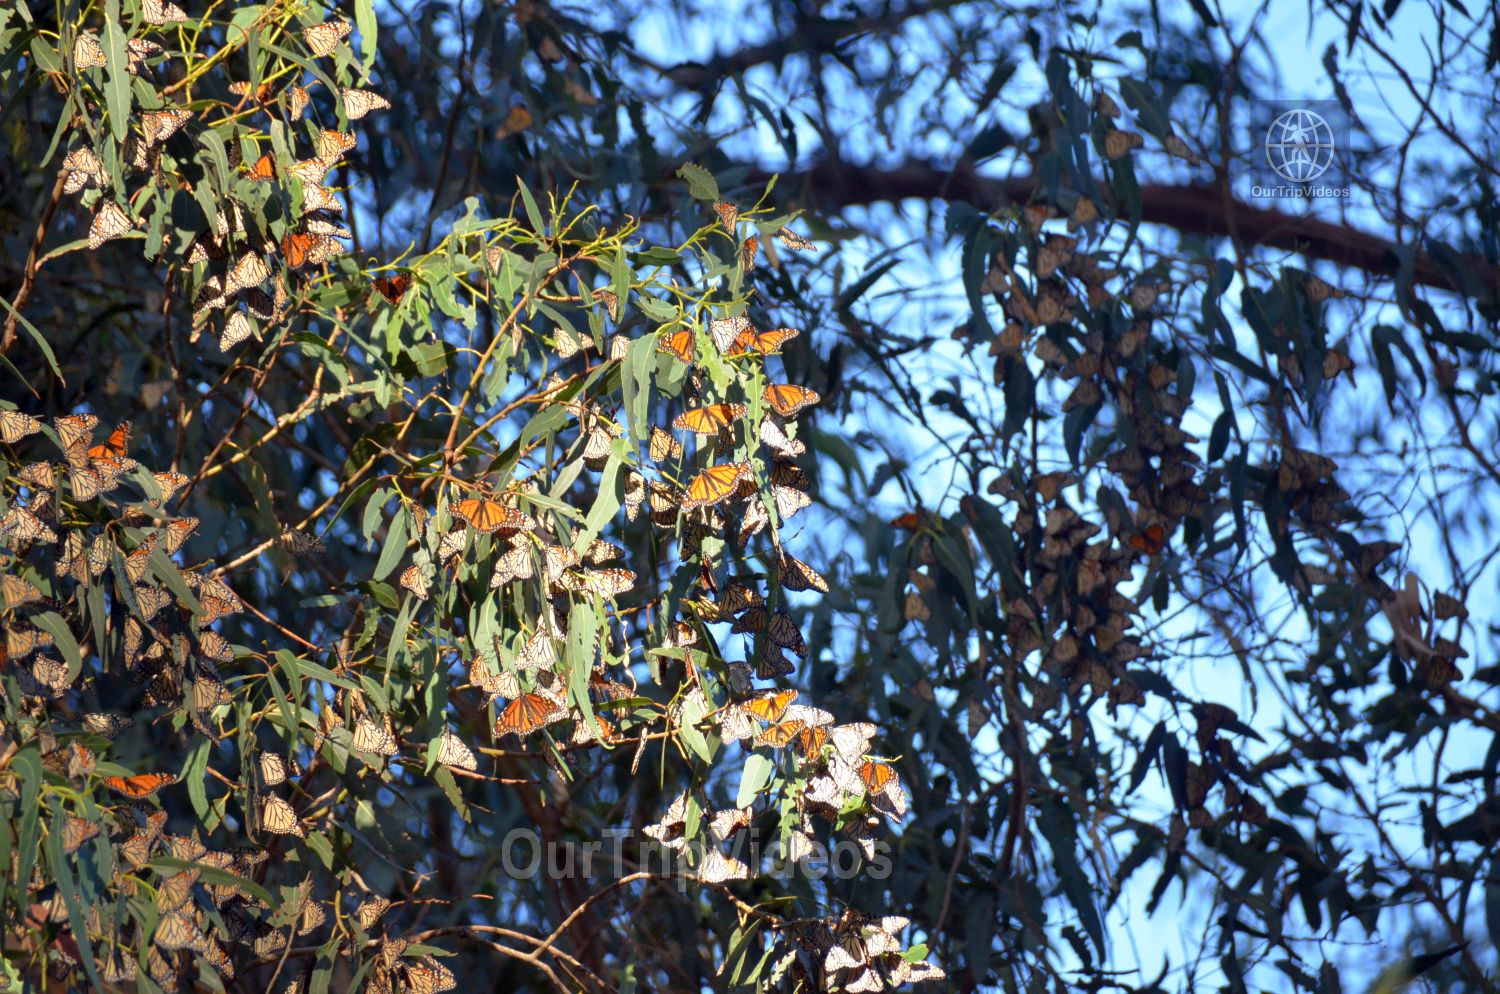 Monarch Butterfly Grove, Pismo Beach, CA, USA - Picture 14 of 25